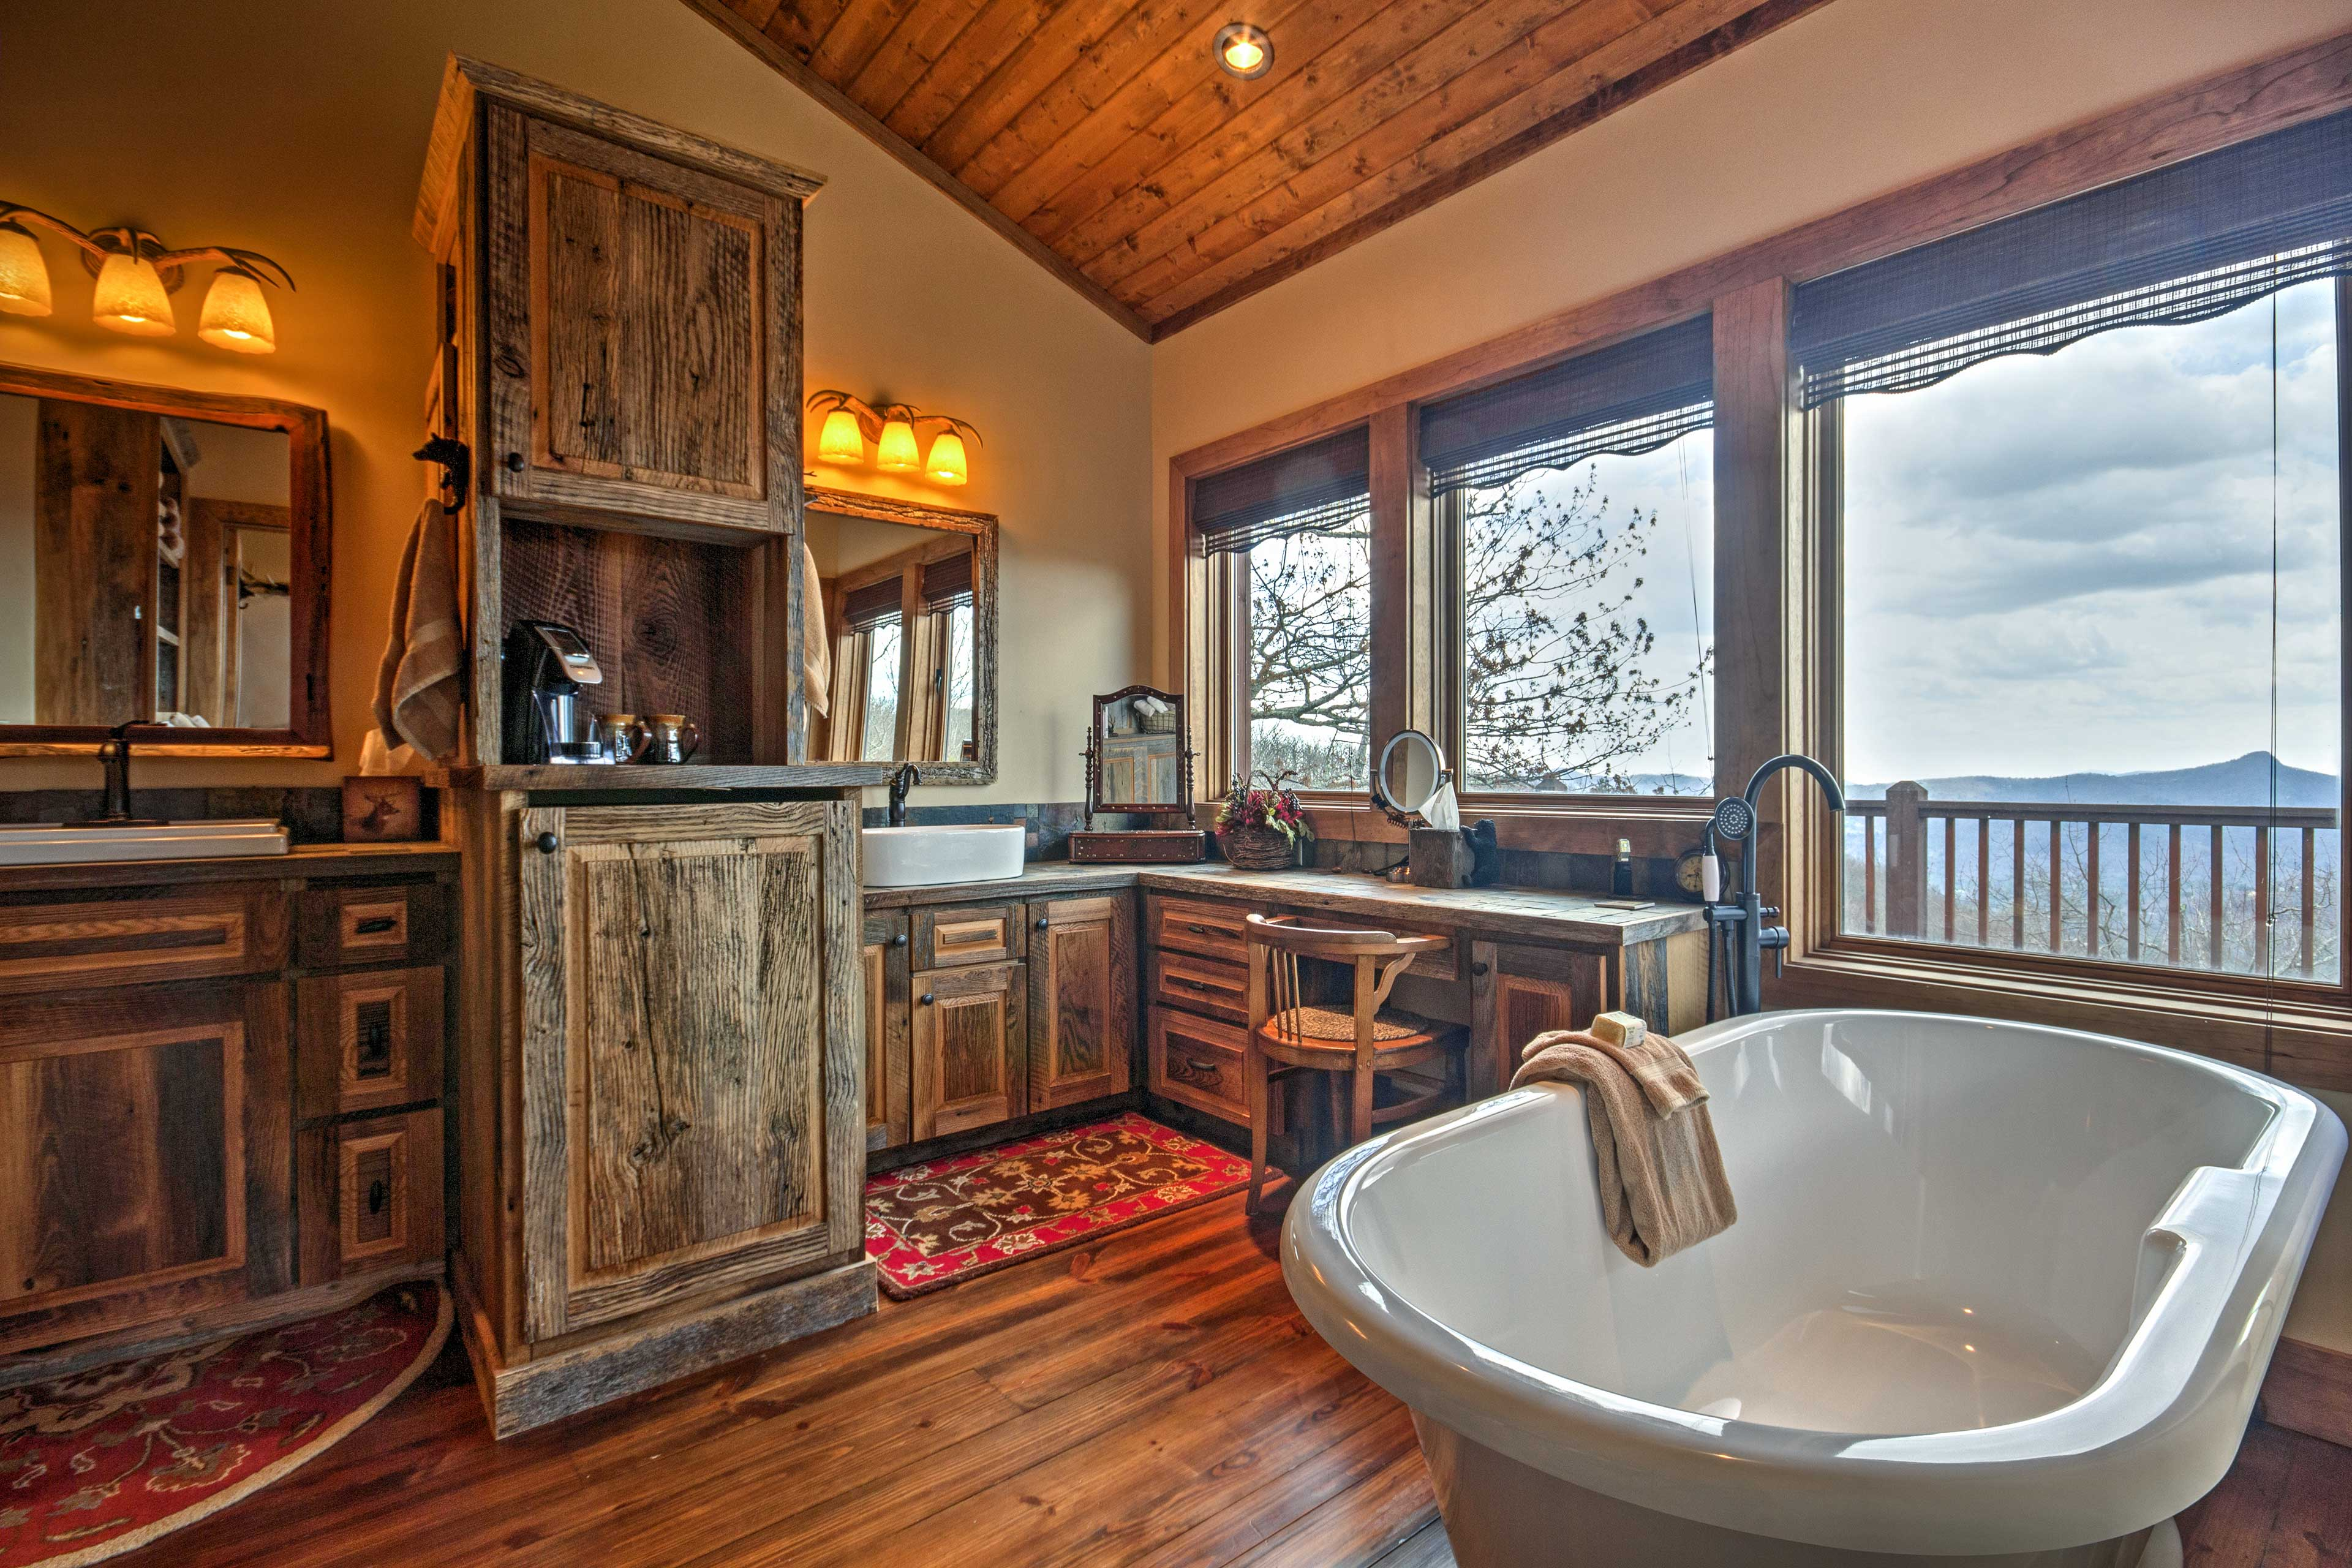 Soak your sore muscles in the elegant stand-alone bathtub.